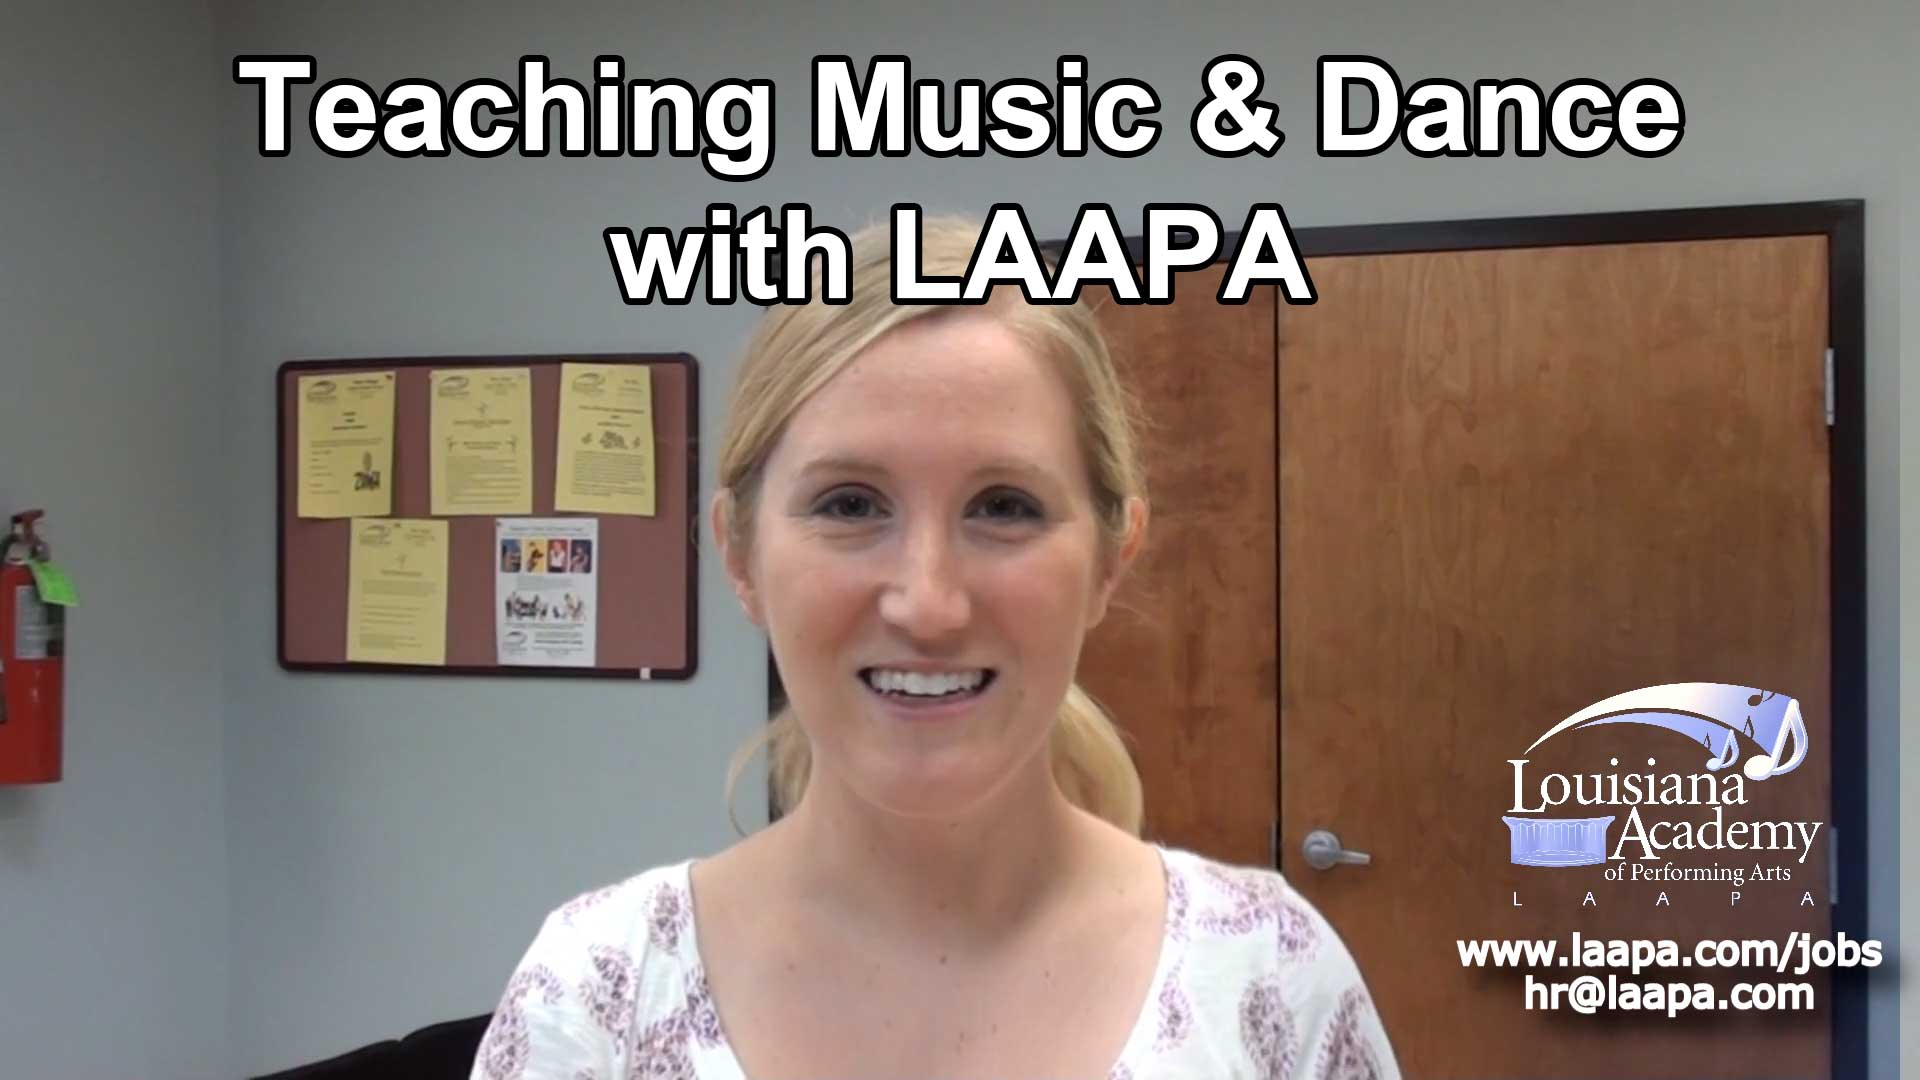 Employment Opportunities for Music & Dance Teachers at LAAPA in New Orleans, Covington, and Mandeville, LA